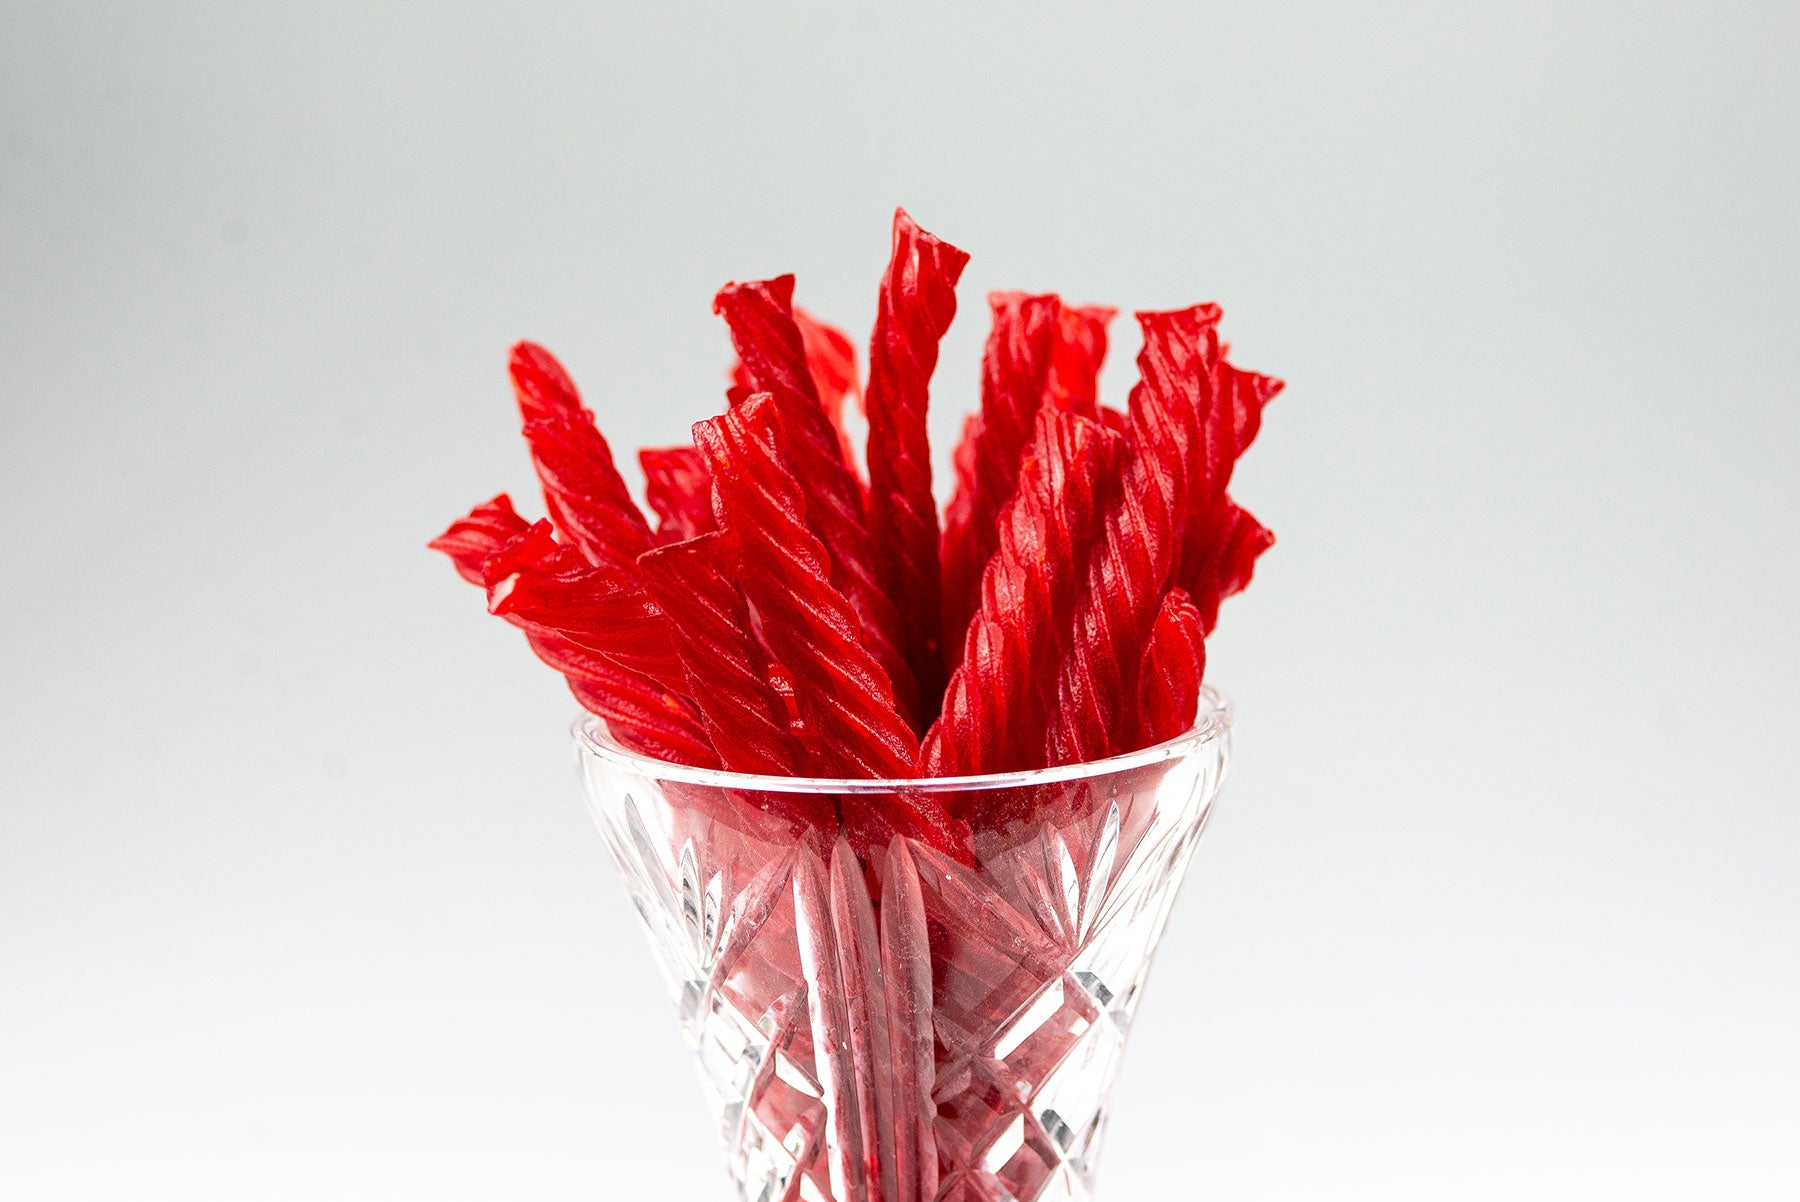 Red Licorice Twists